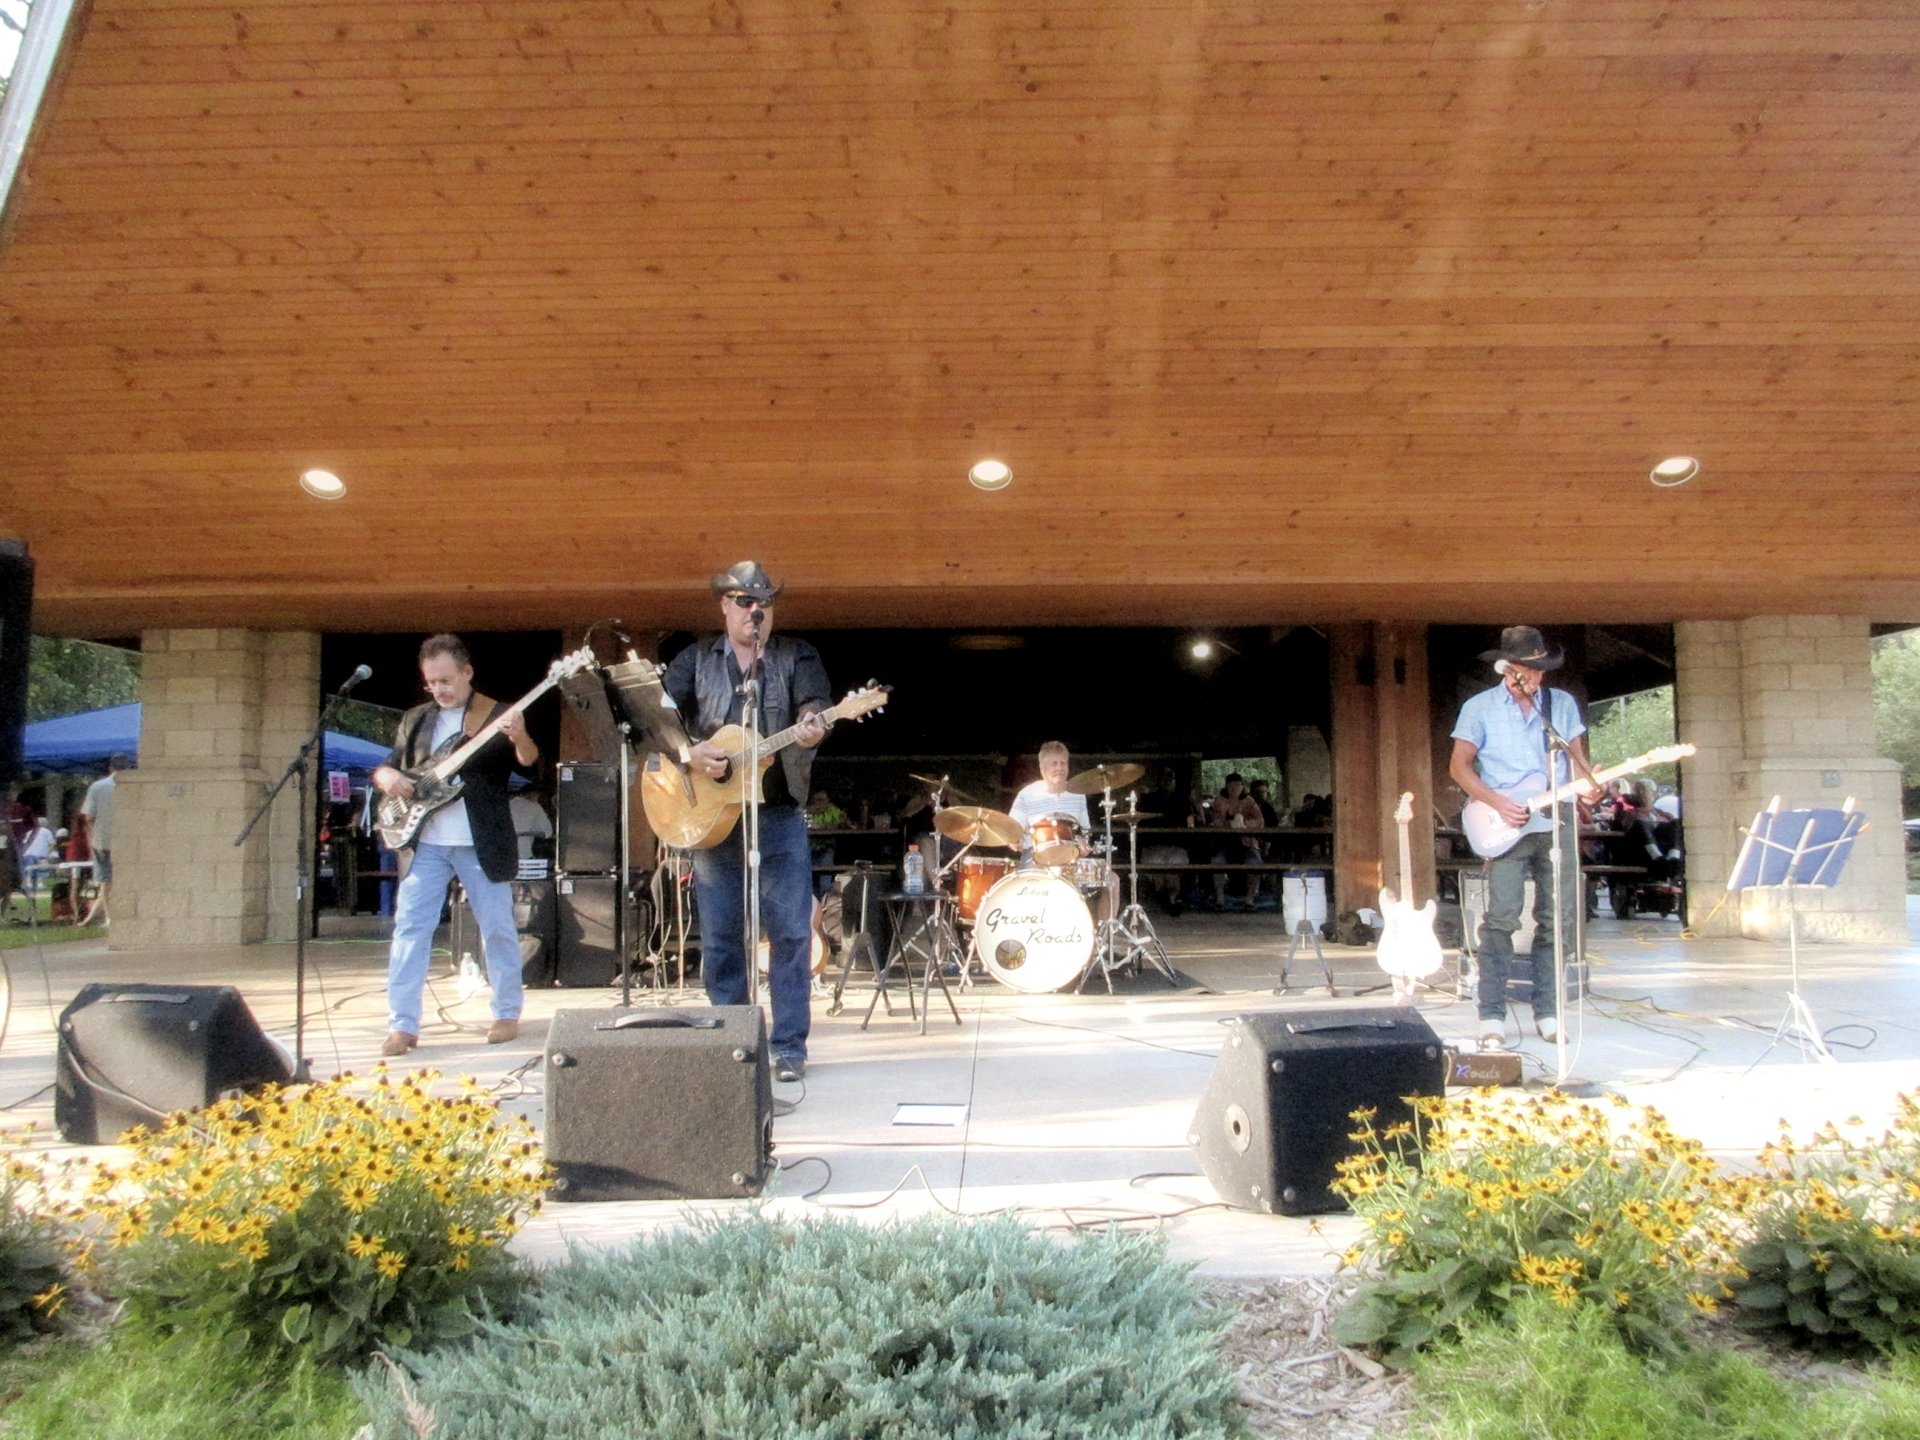 Coon Rapids Summer Concert Series